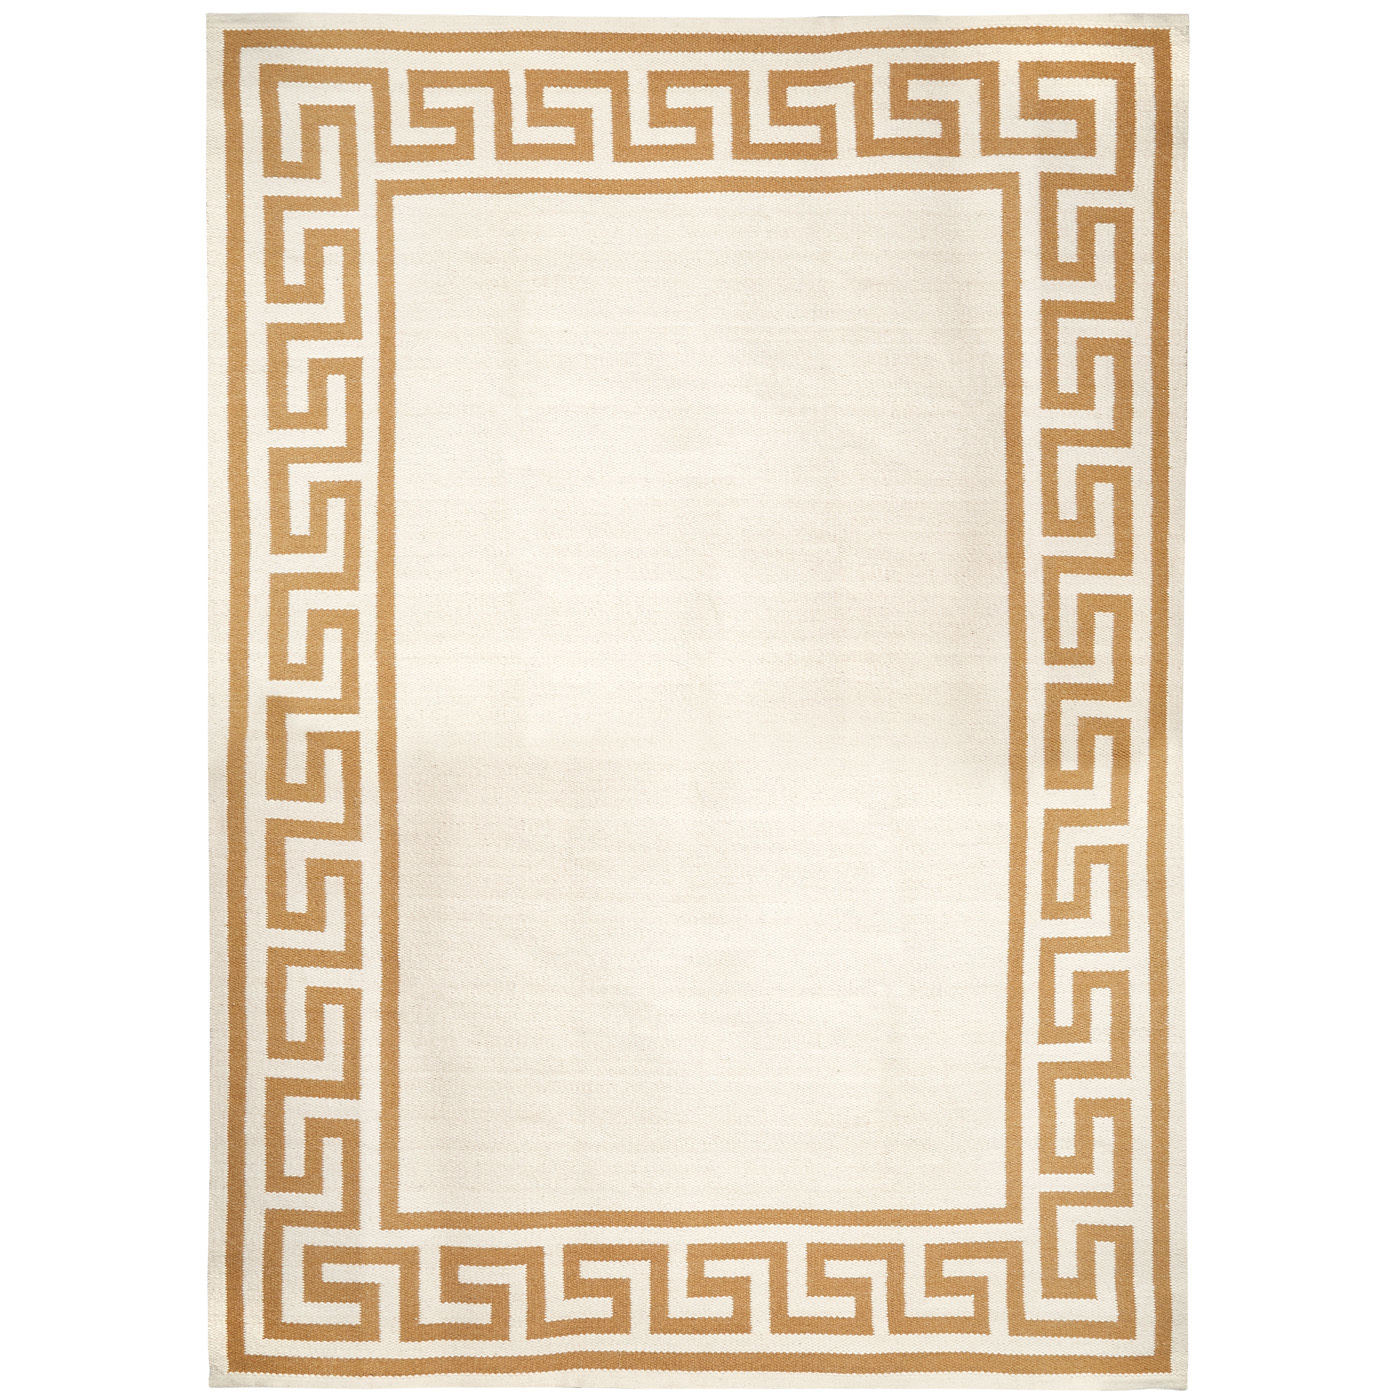 modern-decor-wool-rug-greek-cn-jonathan-adler.jpg